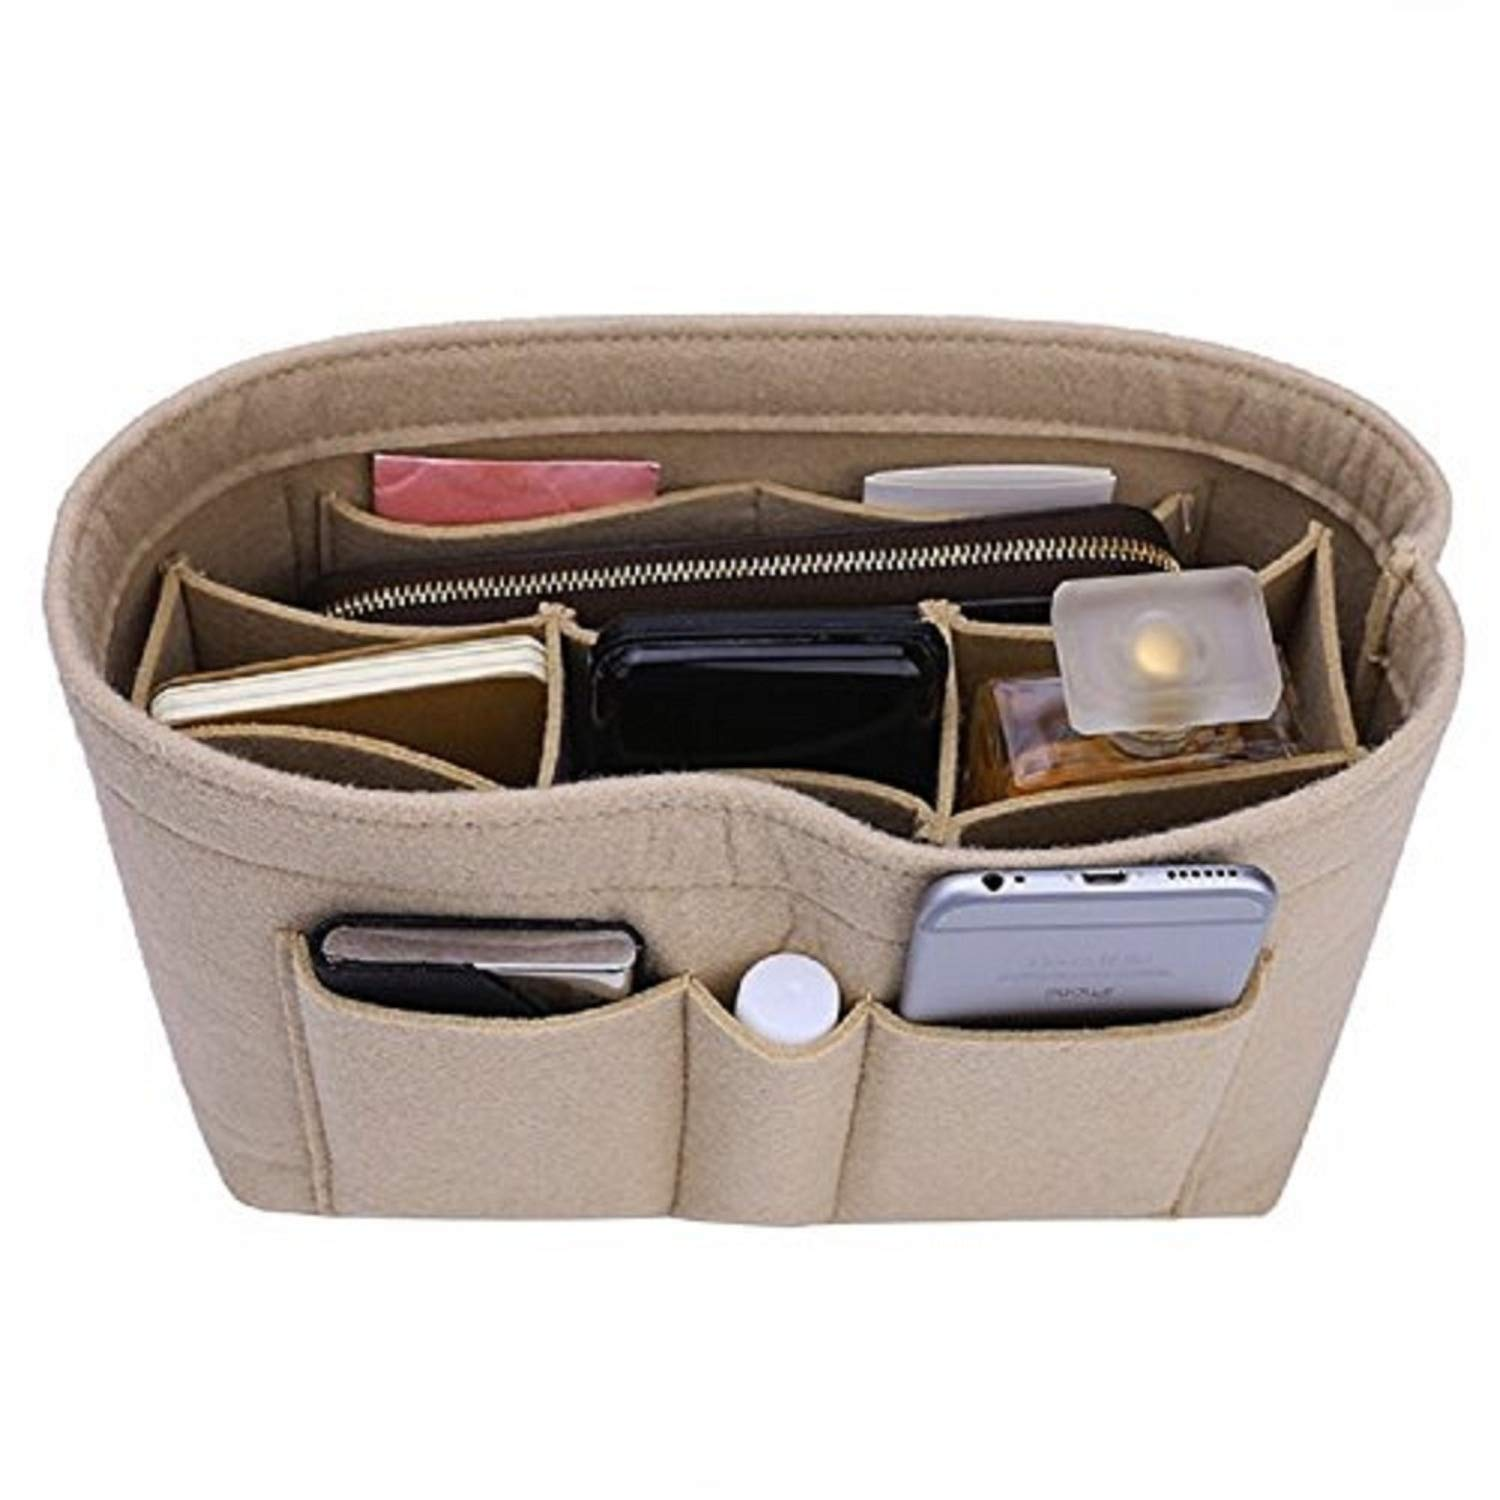 40648657638 Amazon.com  Felt Insert Bag Organizer Bag In Bag For Handbag Purse  Organizer